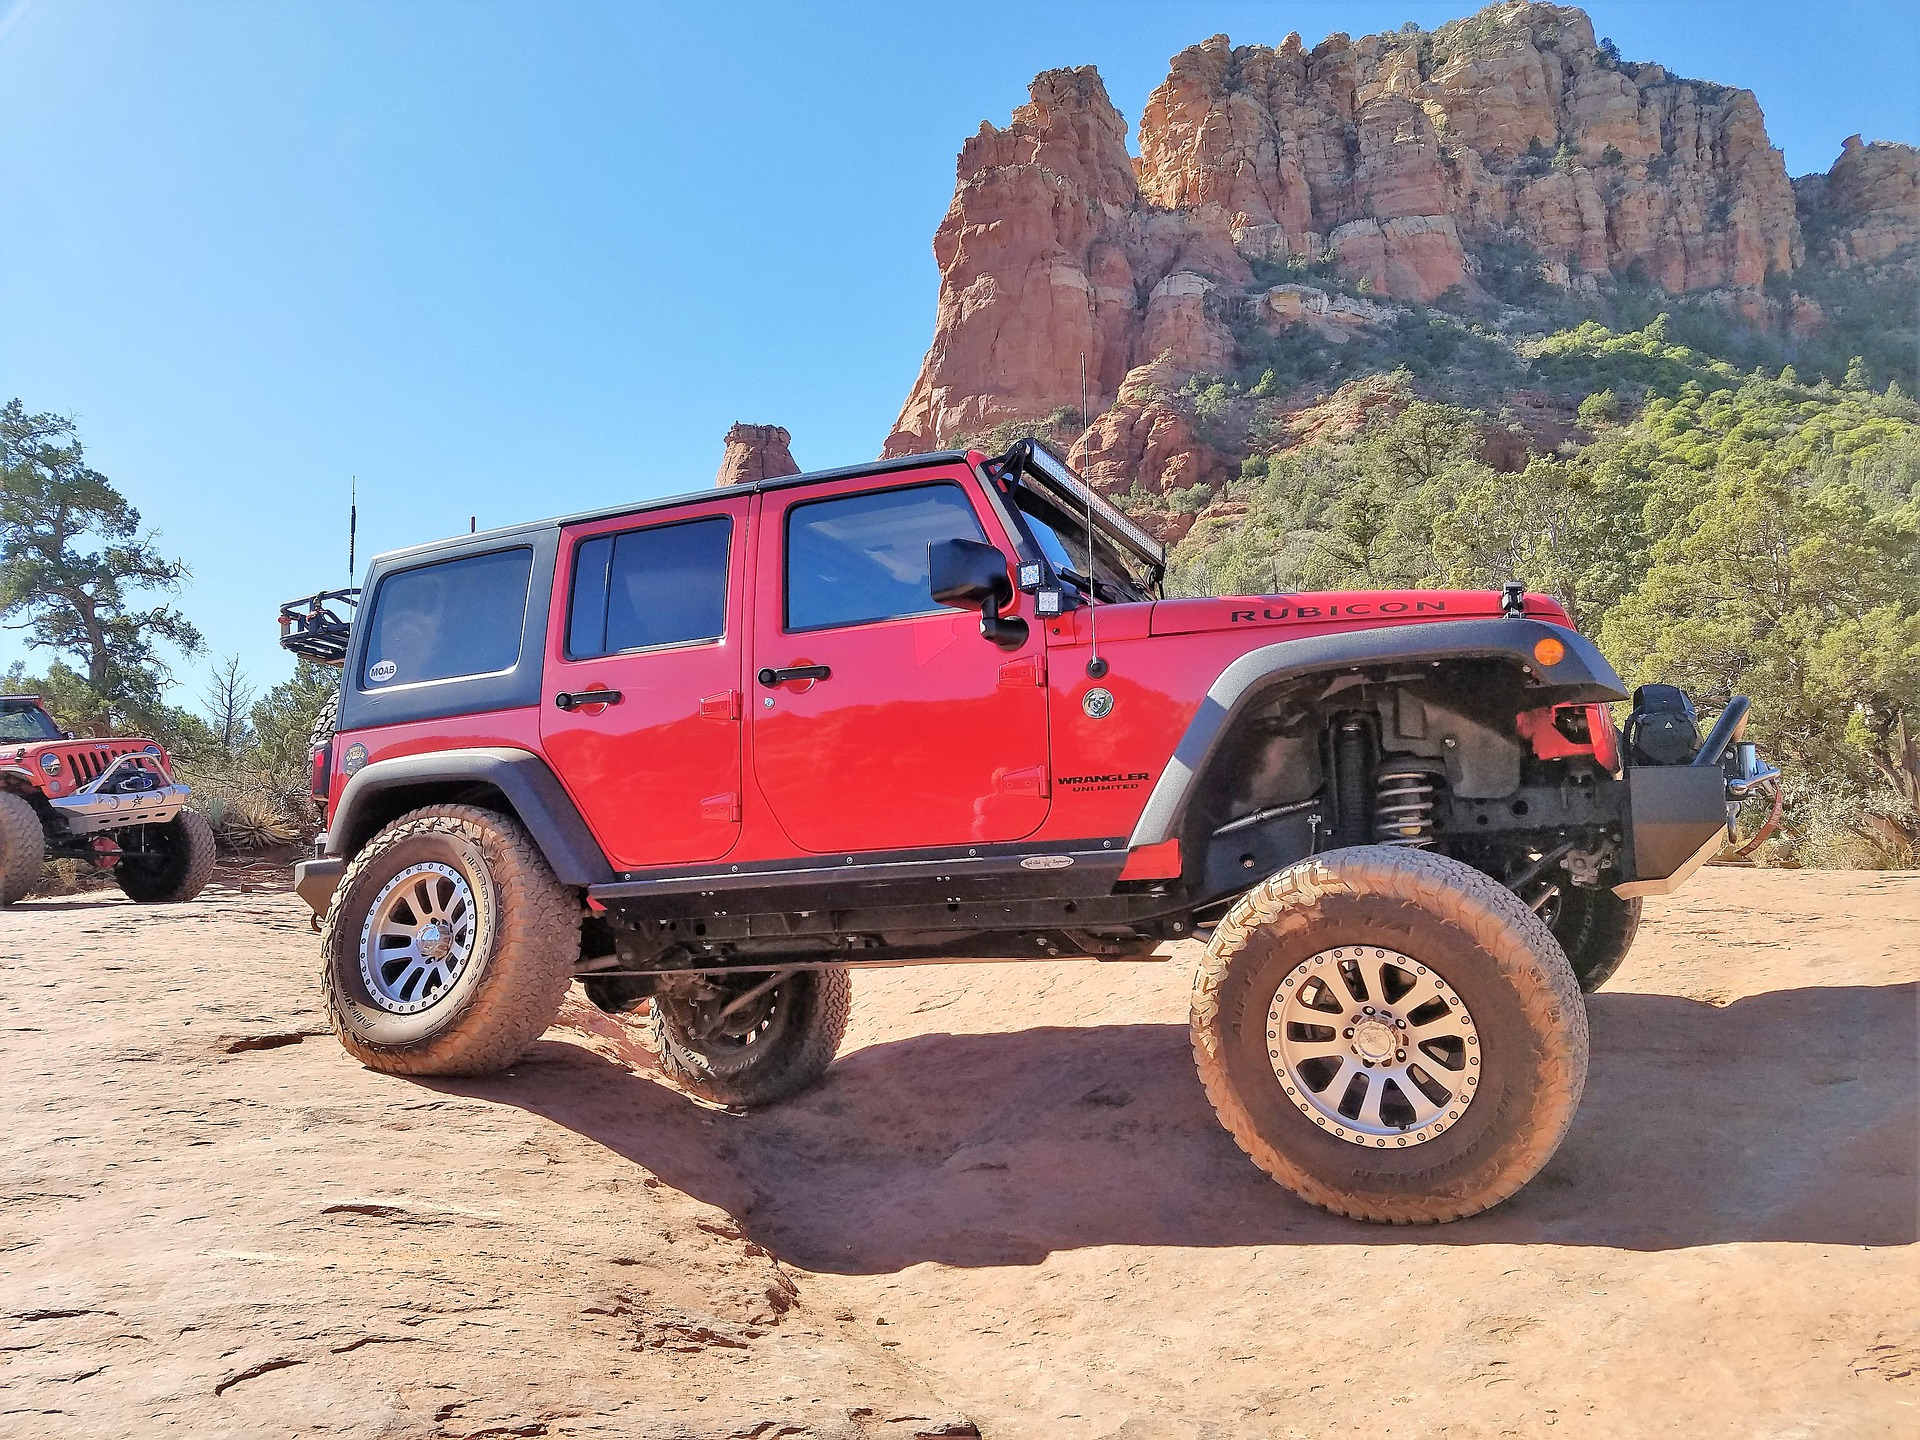 Jeep Wrangler Transfer Cases from National Differential in Colorado